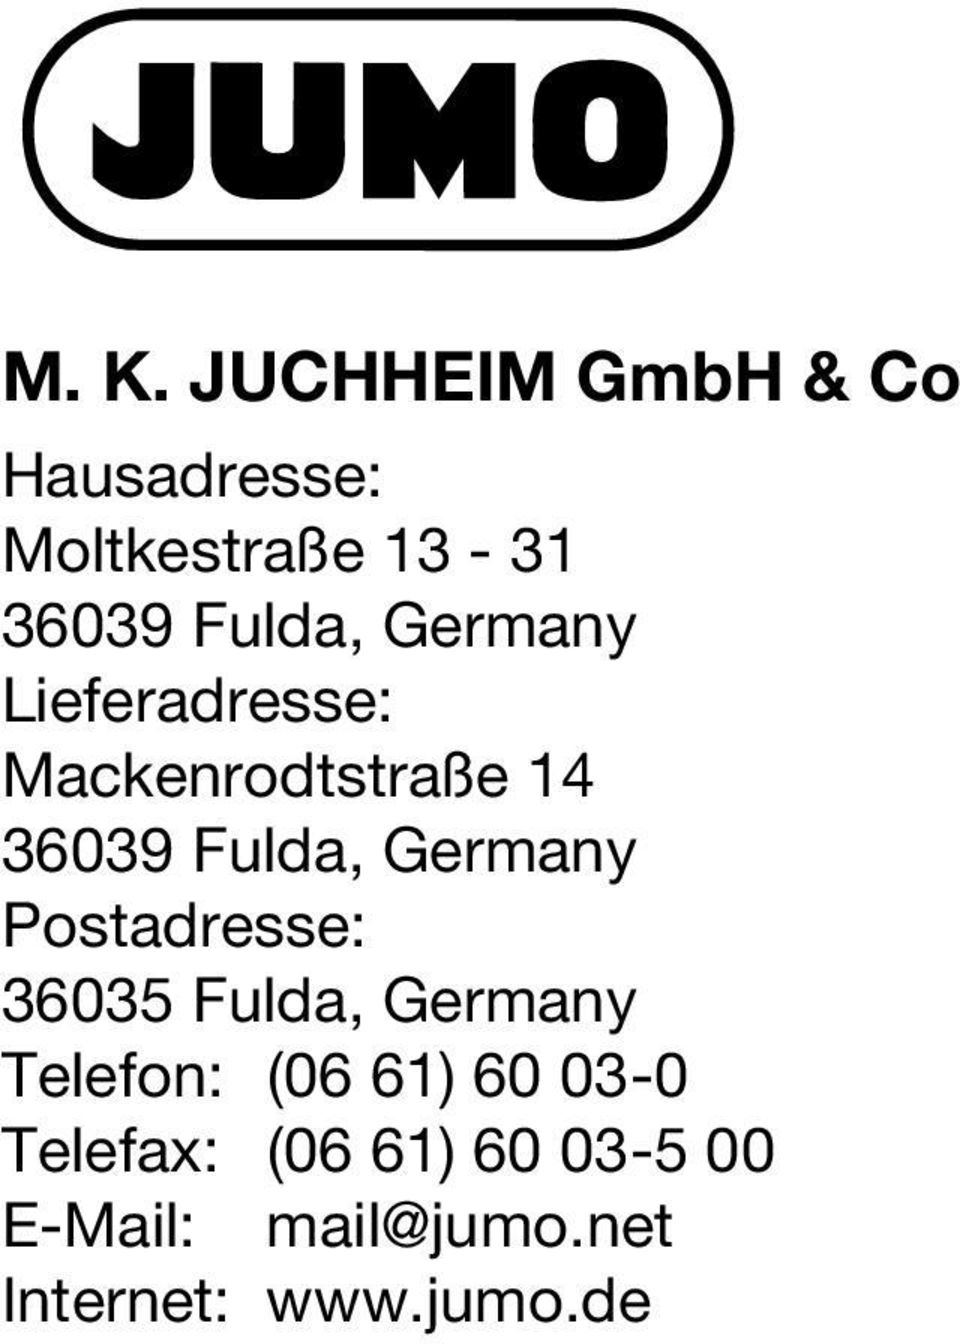 Germany Postadresse: 36035 Fulda, Germany Telefon: (06 61) 60